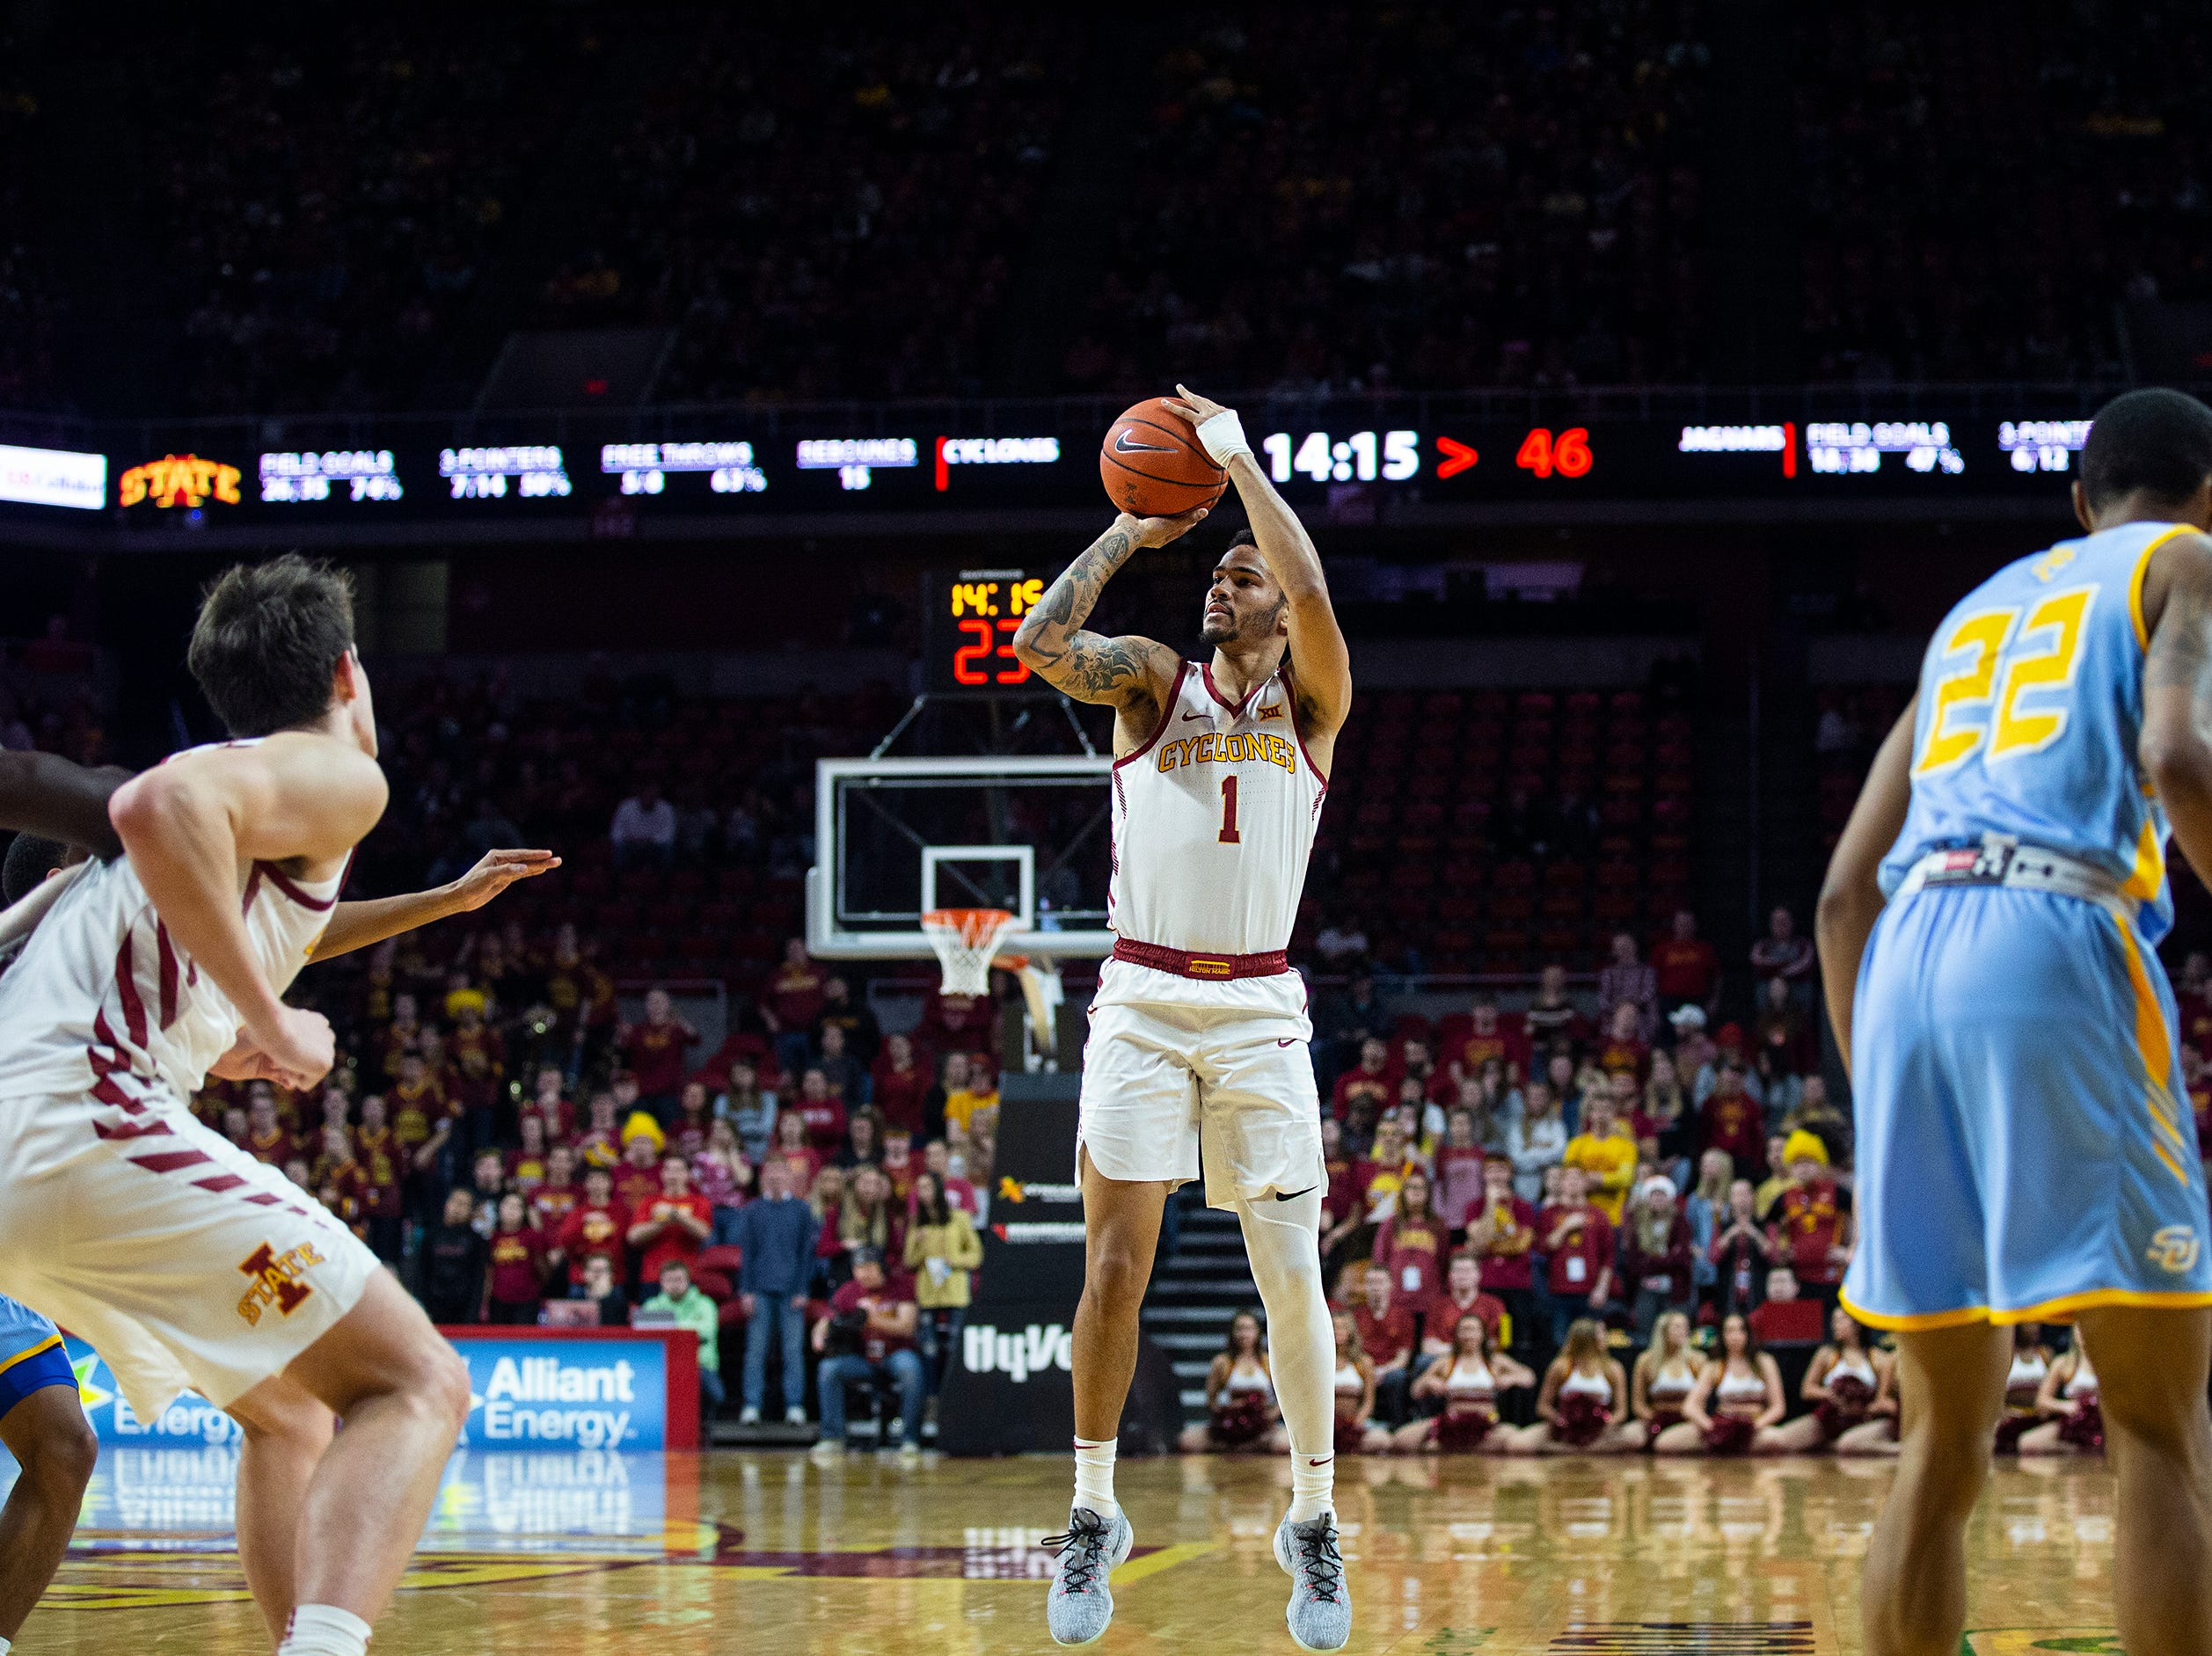 Iowa State's Nick Weiler-Babb shoots a three during the Iowa State men's basketball game against Southern on Sunday, Dec. 9, 2018, in Hilton Coliseum.